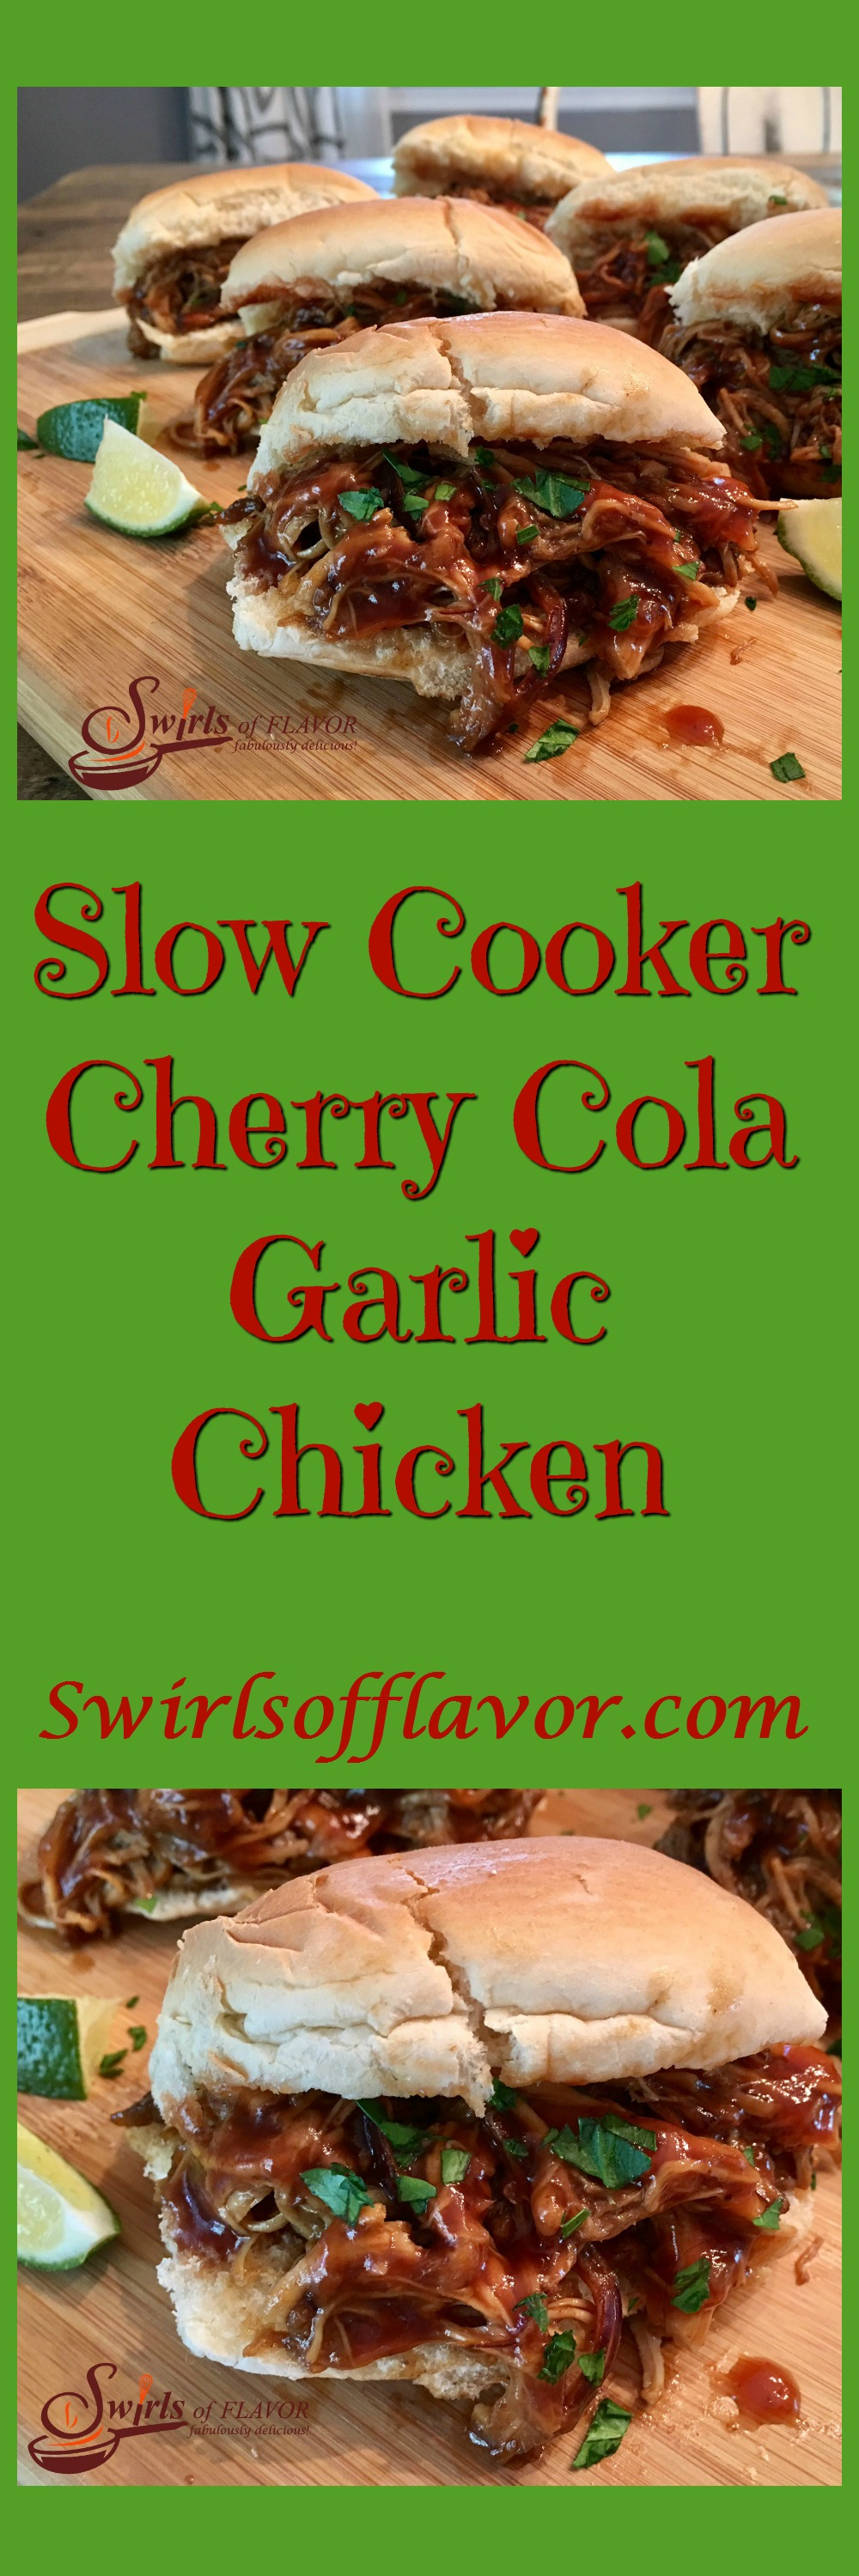 Slow Cooker Cherry Cola Garlic Chicken makes it's own sweet and spicy sauce with brown sugar, cola soda and garlic for an easy chicken dinner recipe tonight.  chicken breasts | soda | sauce | dinner | sandwich | pulled chicken | #swirlsofflavor